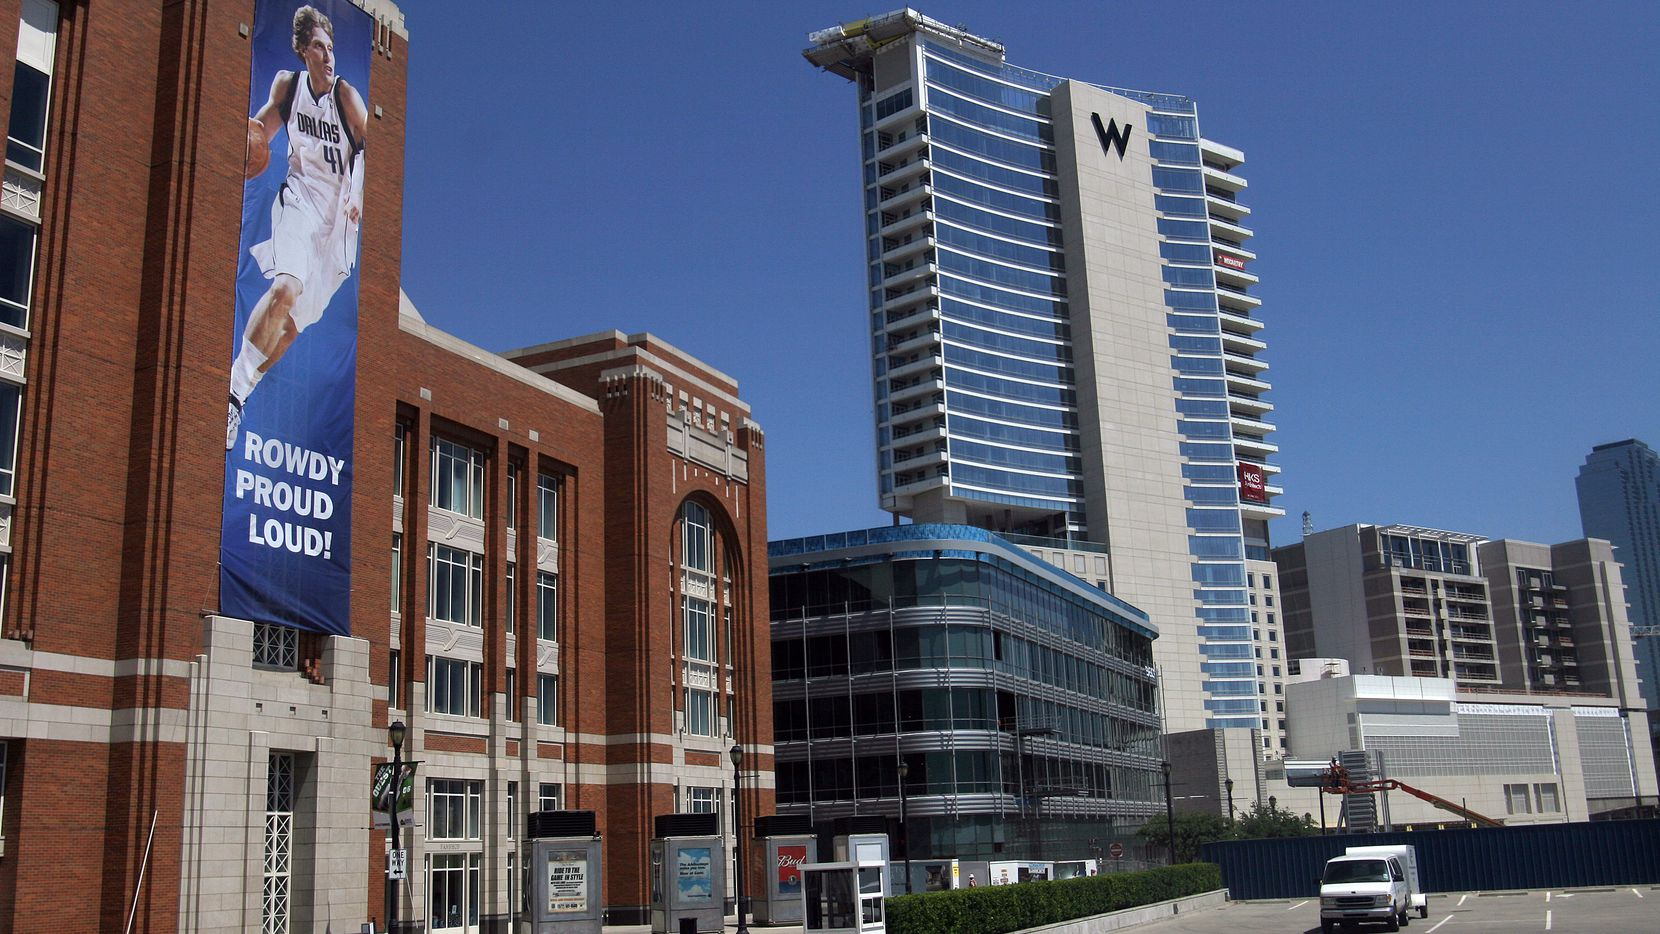 The W Dallas Victory Hotel opened in 2006.